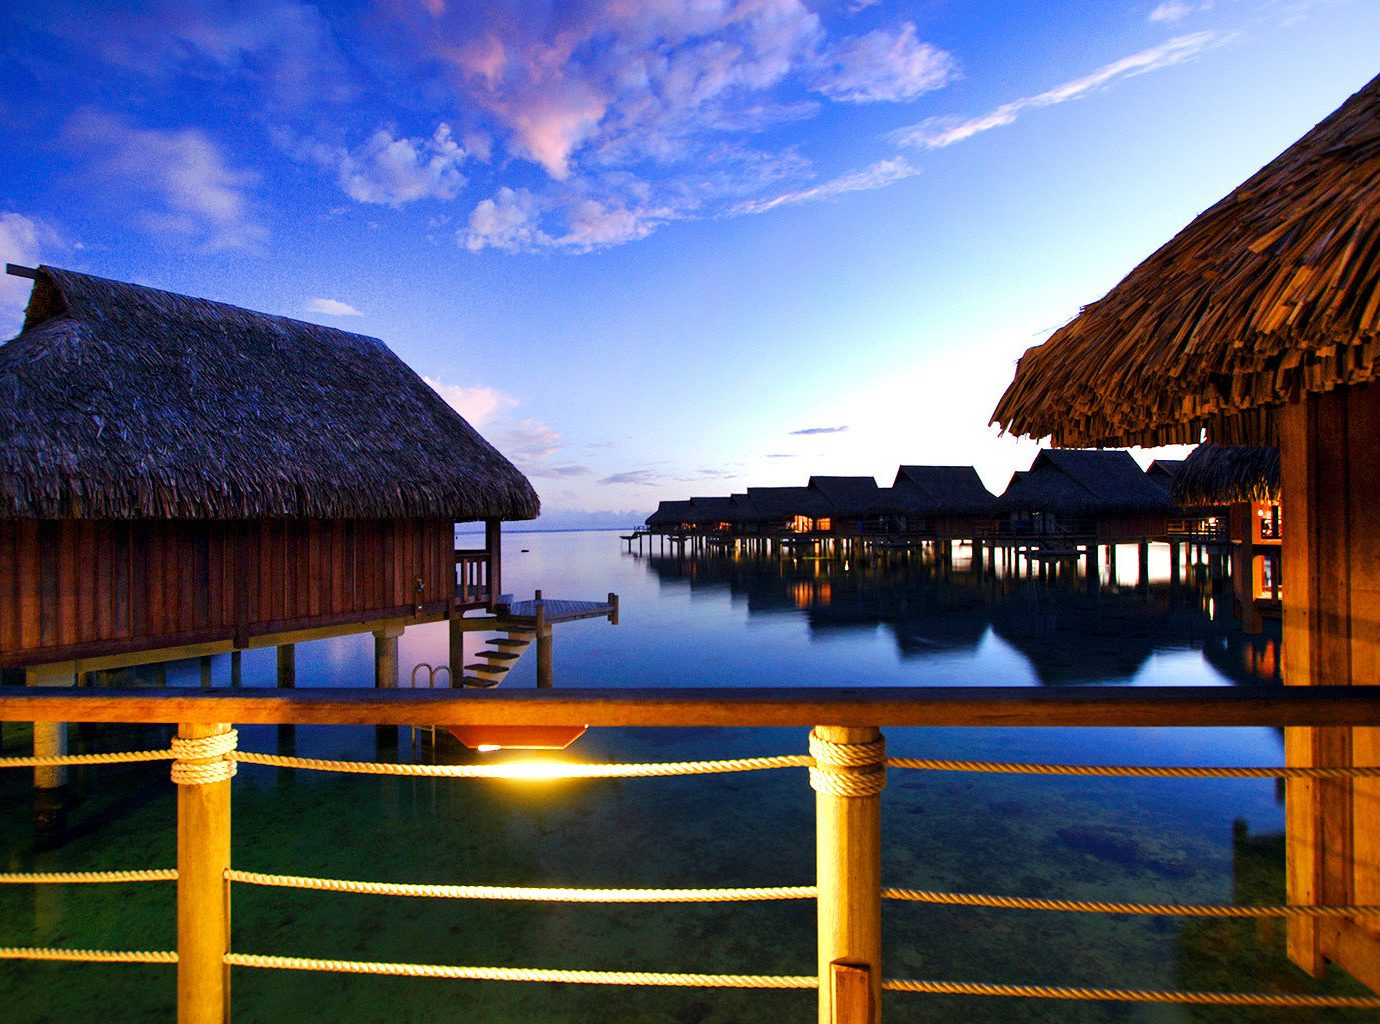 Architecture Buildings Exterior Hotels Luxury Overwater Bungalow Resort Scenic views sky outdoor water umbrella reflection Sea Ocean Sunset evening house night vacation dusk morning Coast sunlight bay